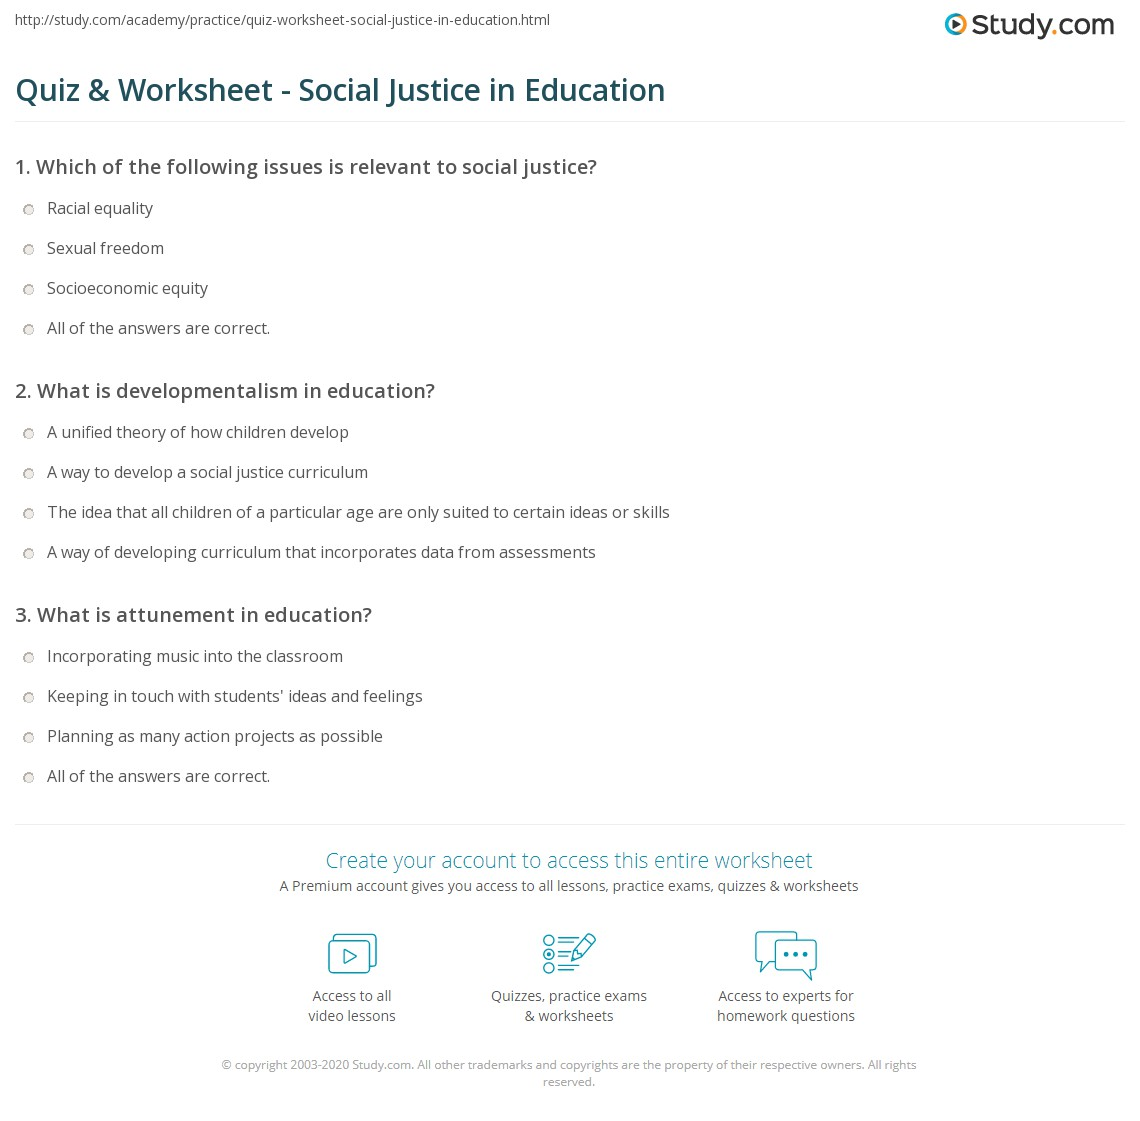 quiz & worksheet - social justice in education | study